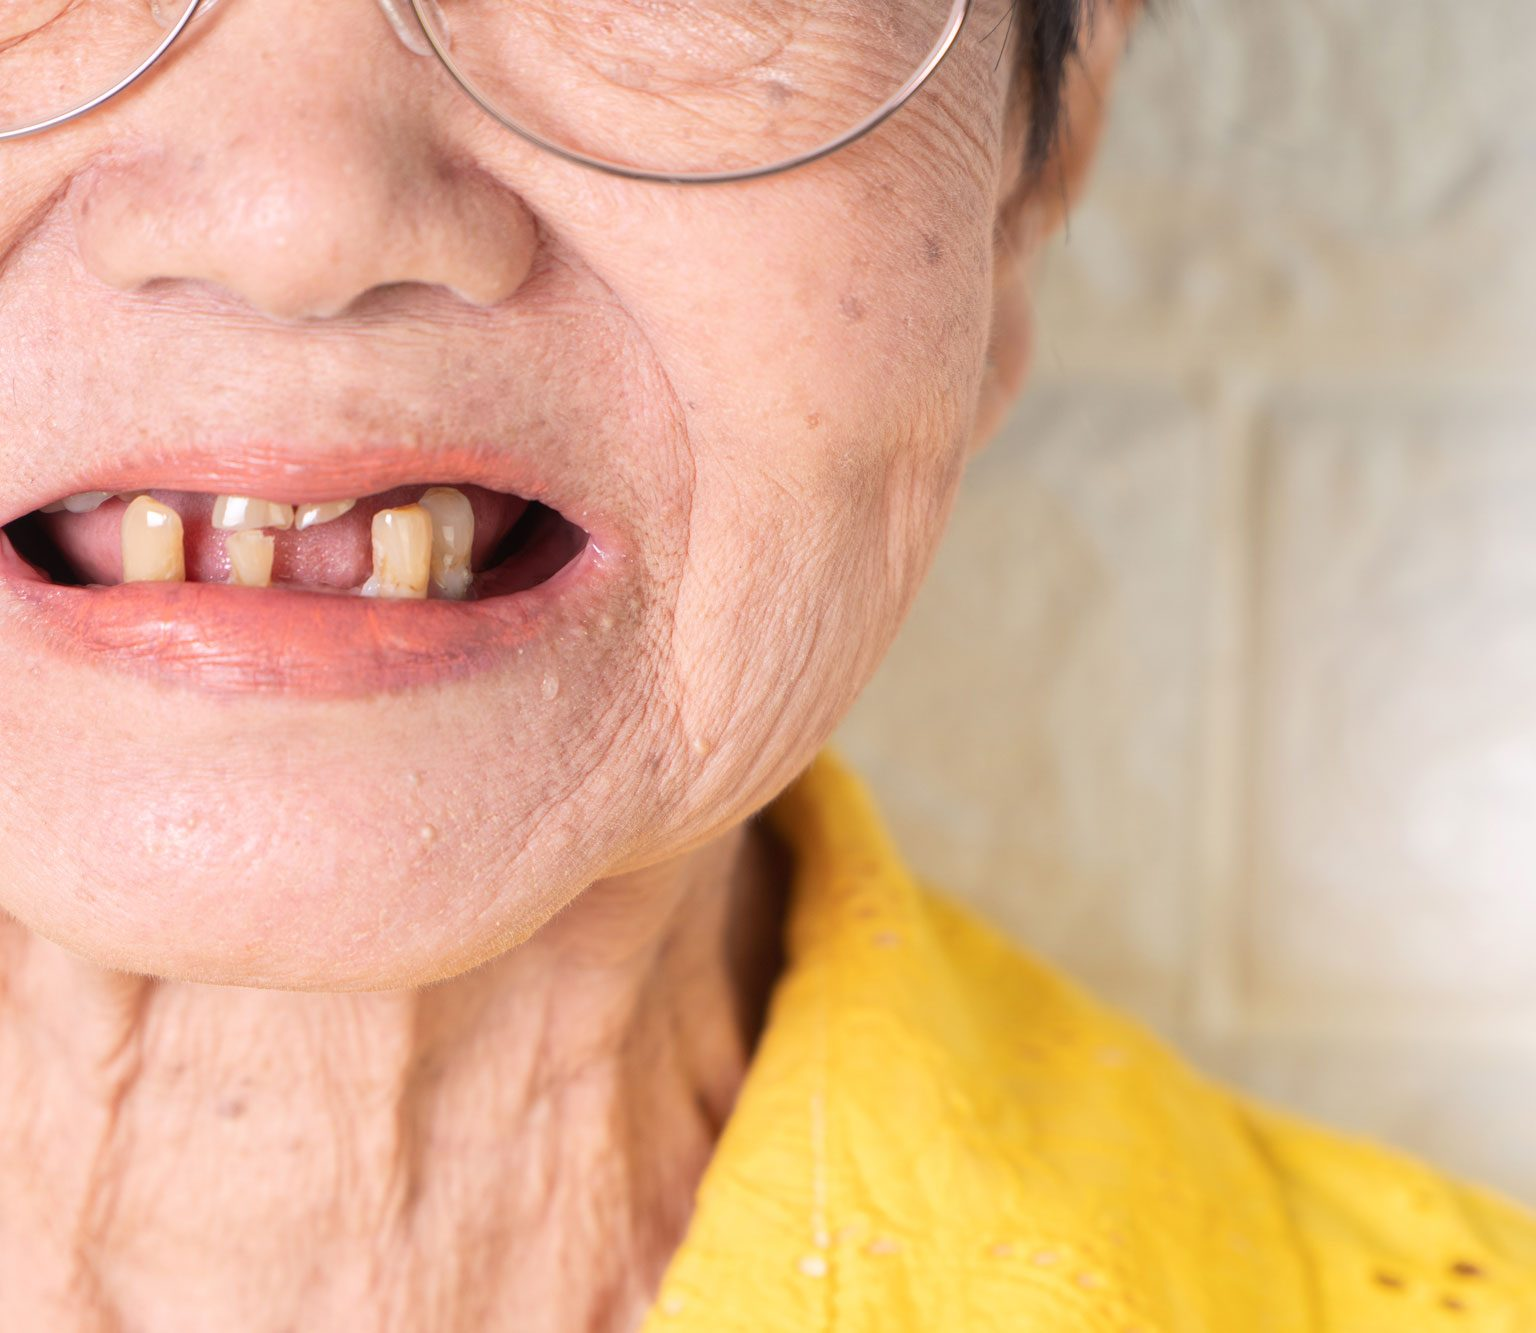 Geriatric & Family Dentistry At Alpenglow Dental In Bend, Oregon